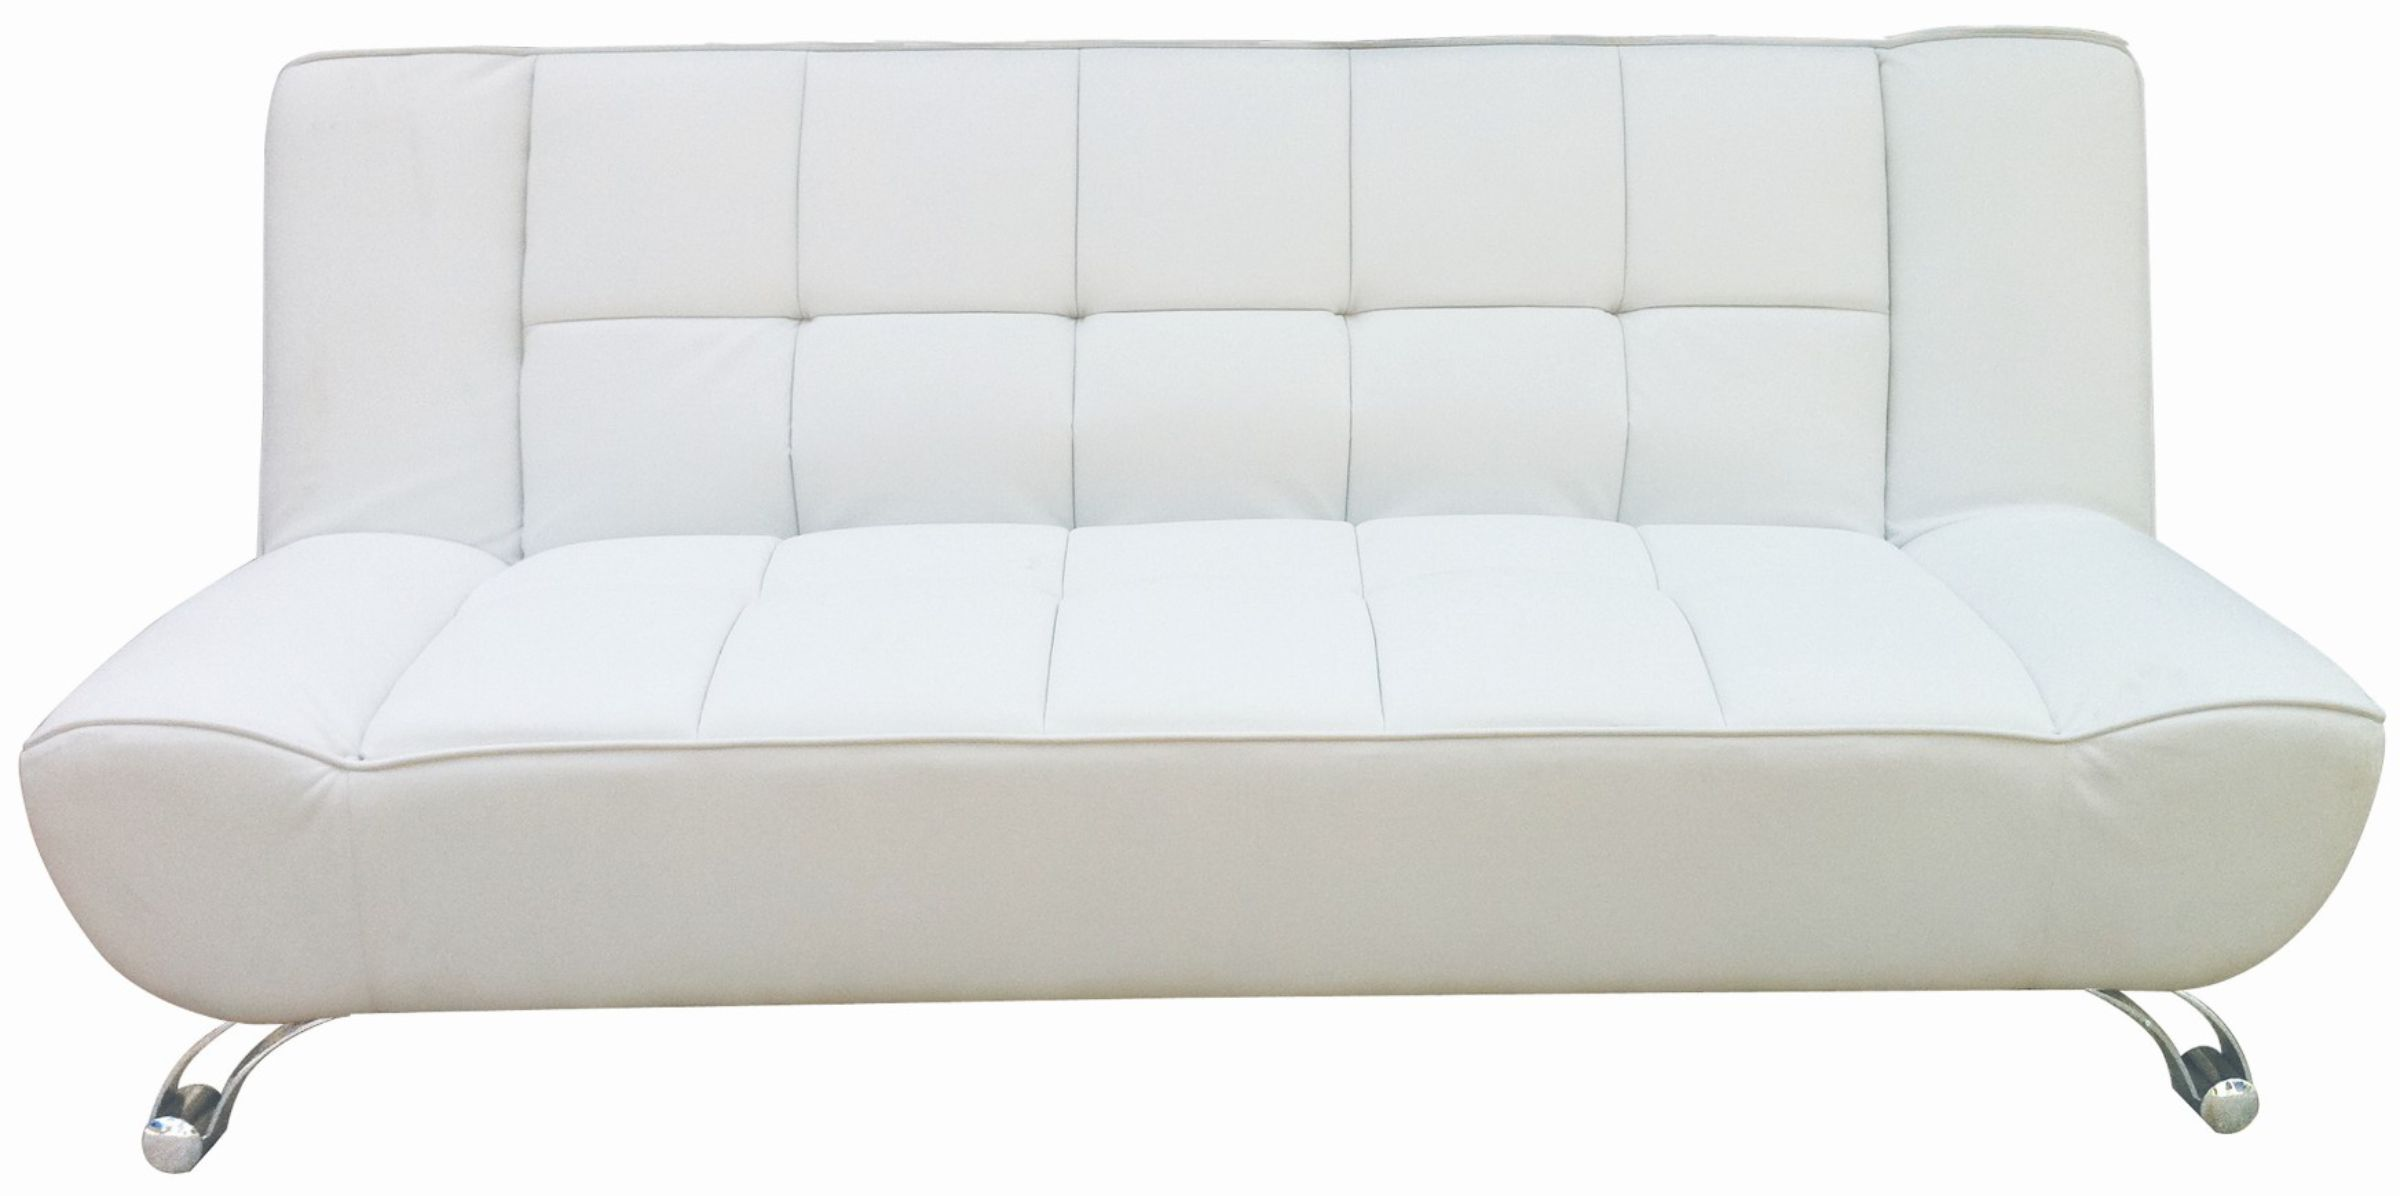 Vogue faux leather white sofa bed for Sofa 0 interest free credit